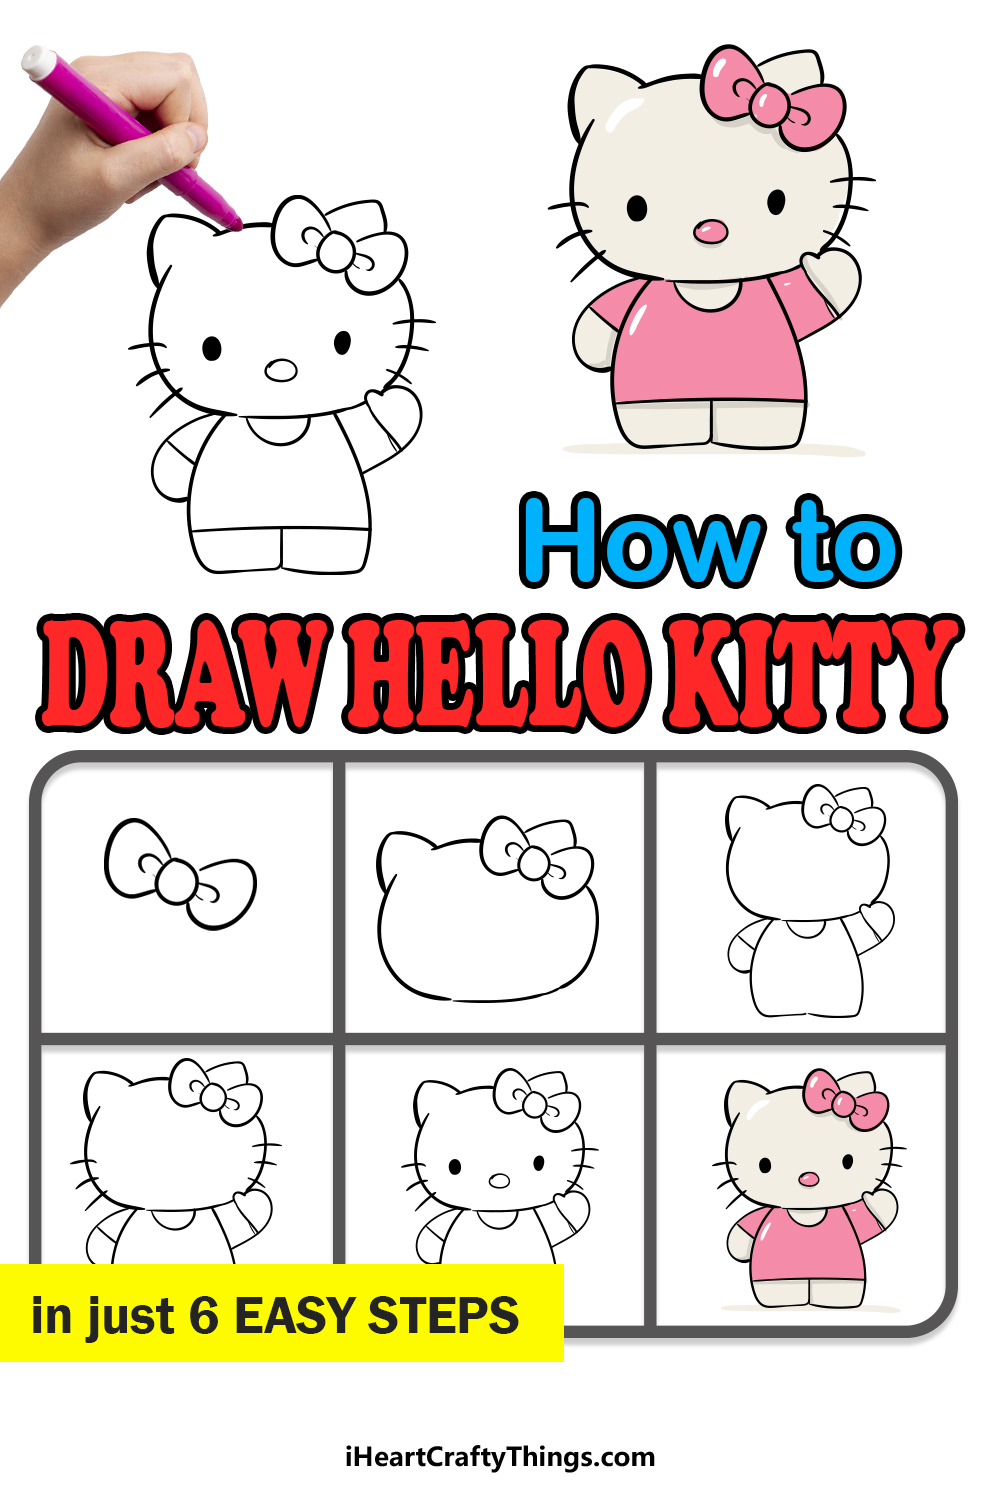 How to draw hello kitty in 6 easy steps